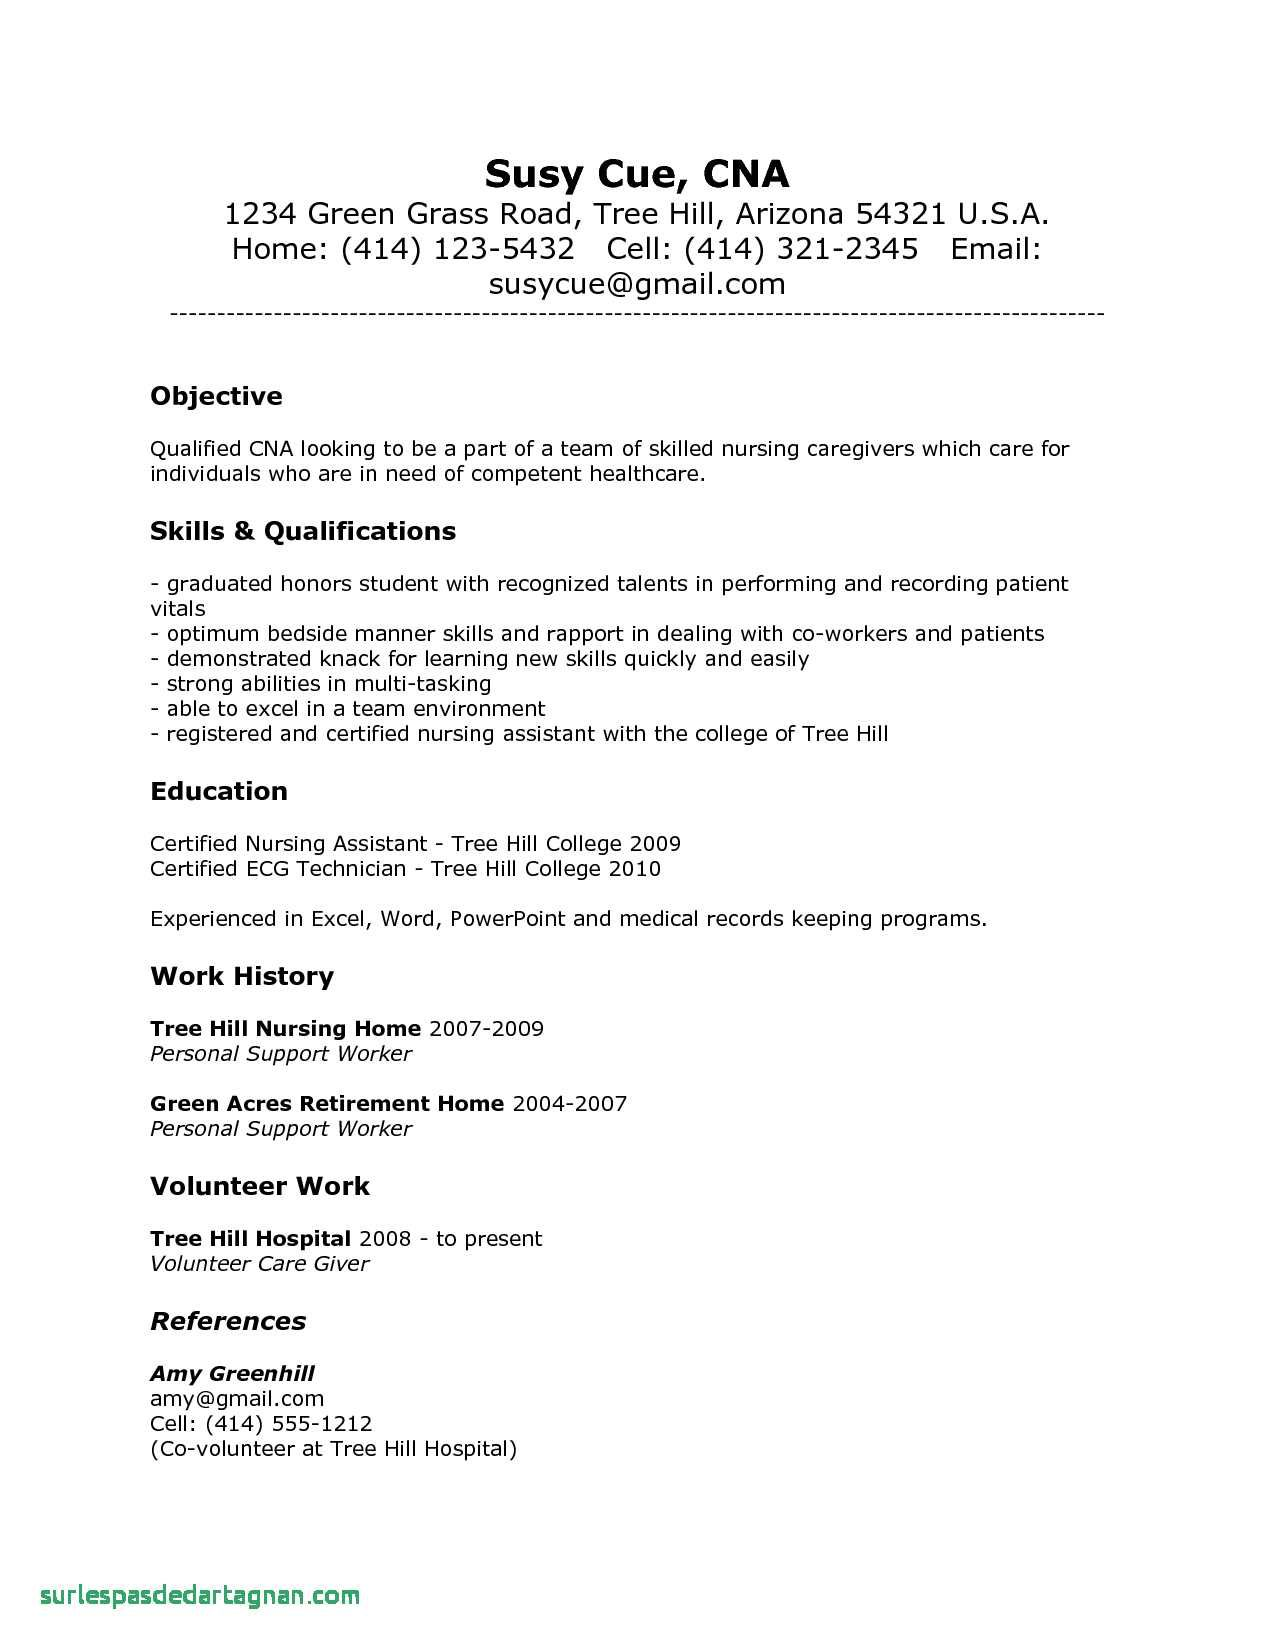 pin on resume templates sample for nursing aide without experience shipping and receiving Resume Sample Resume For Nursing Aide Without Experience